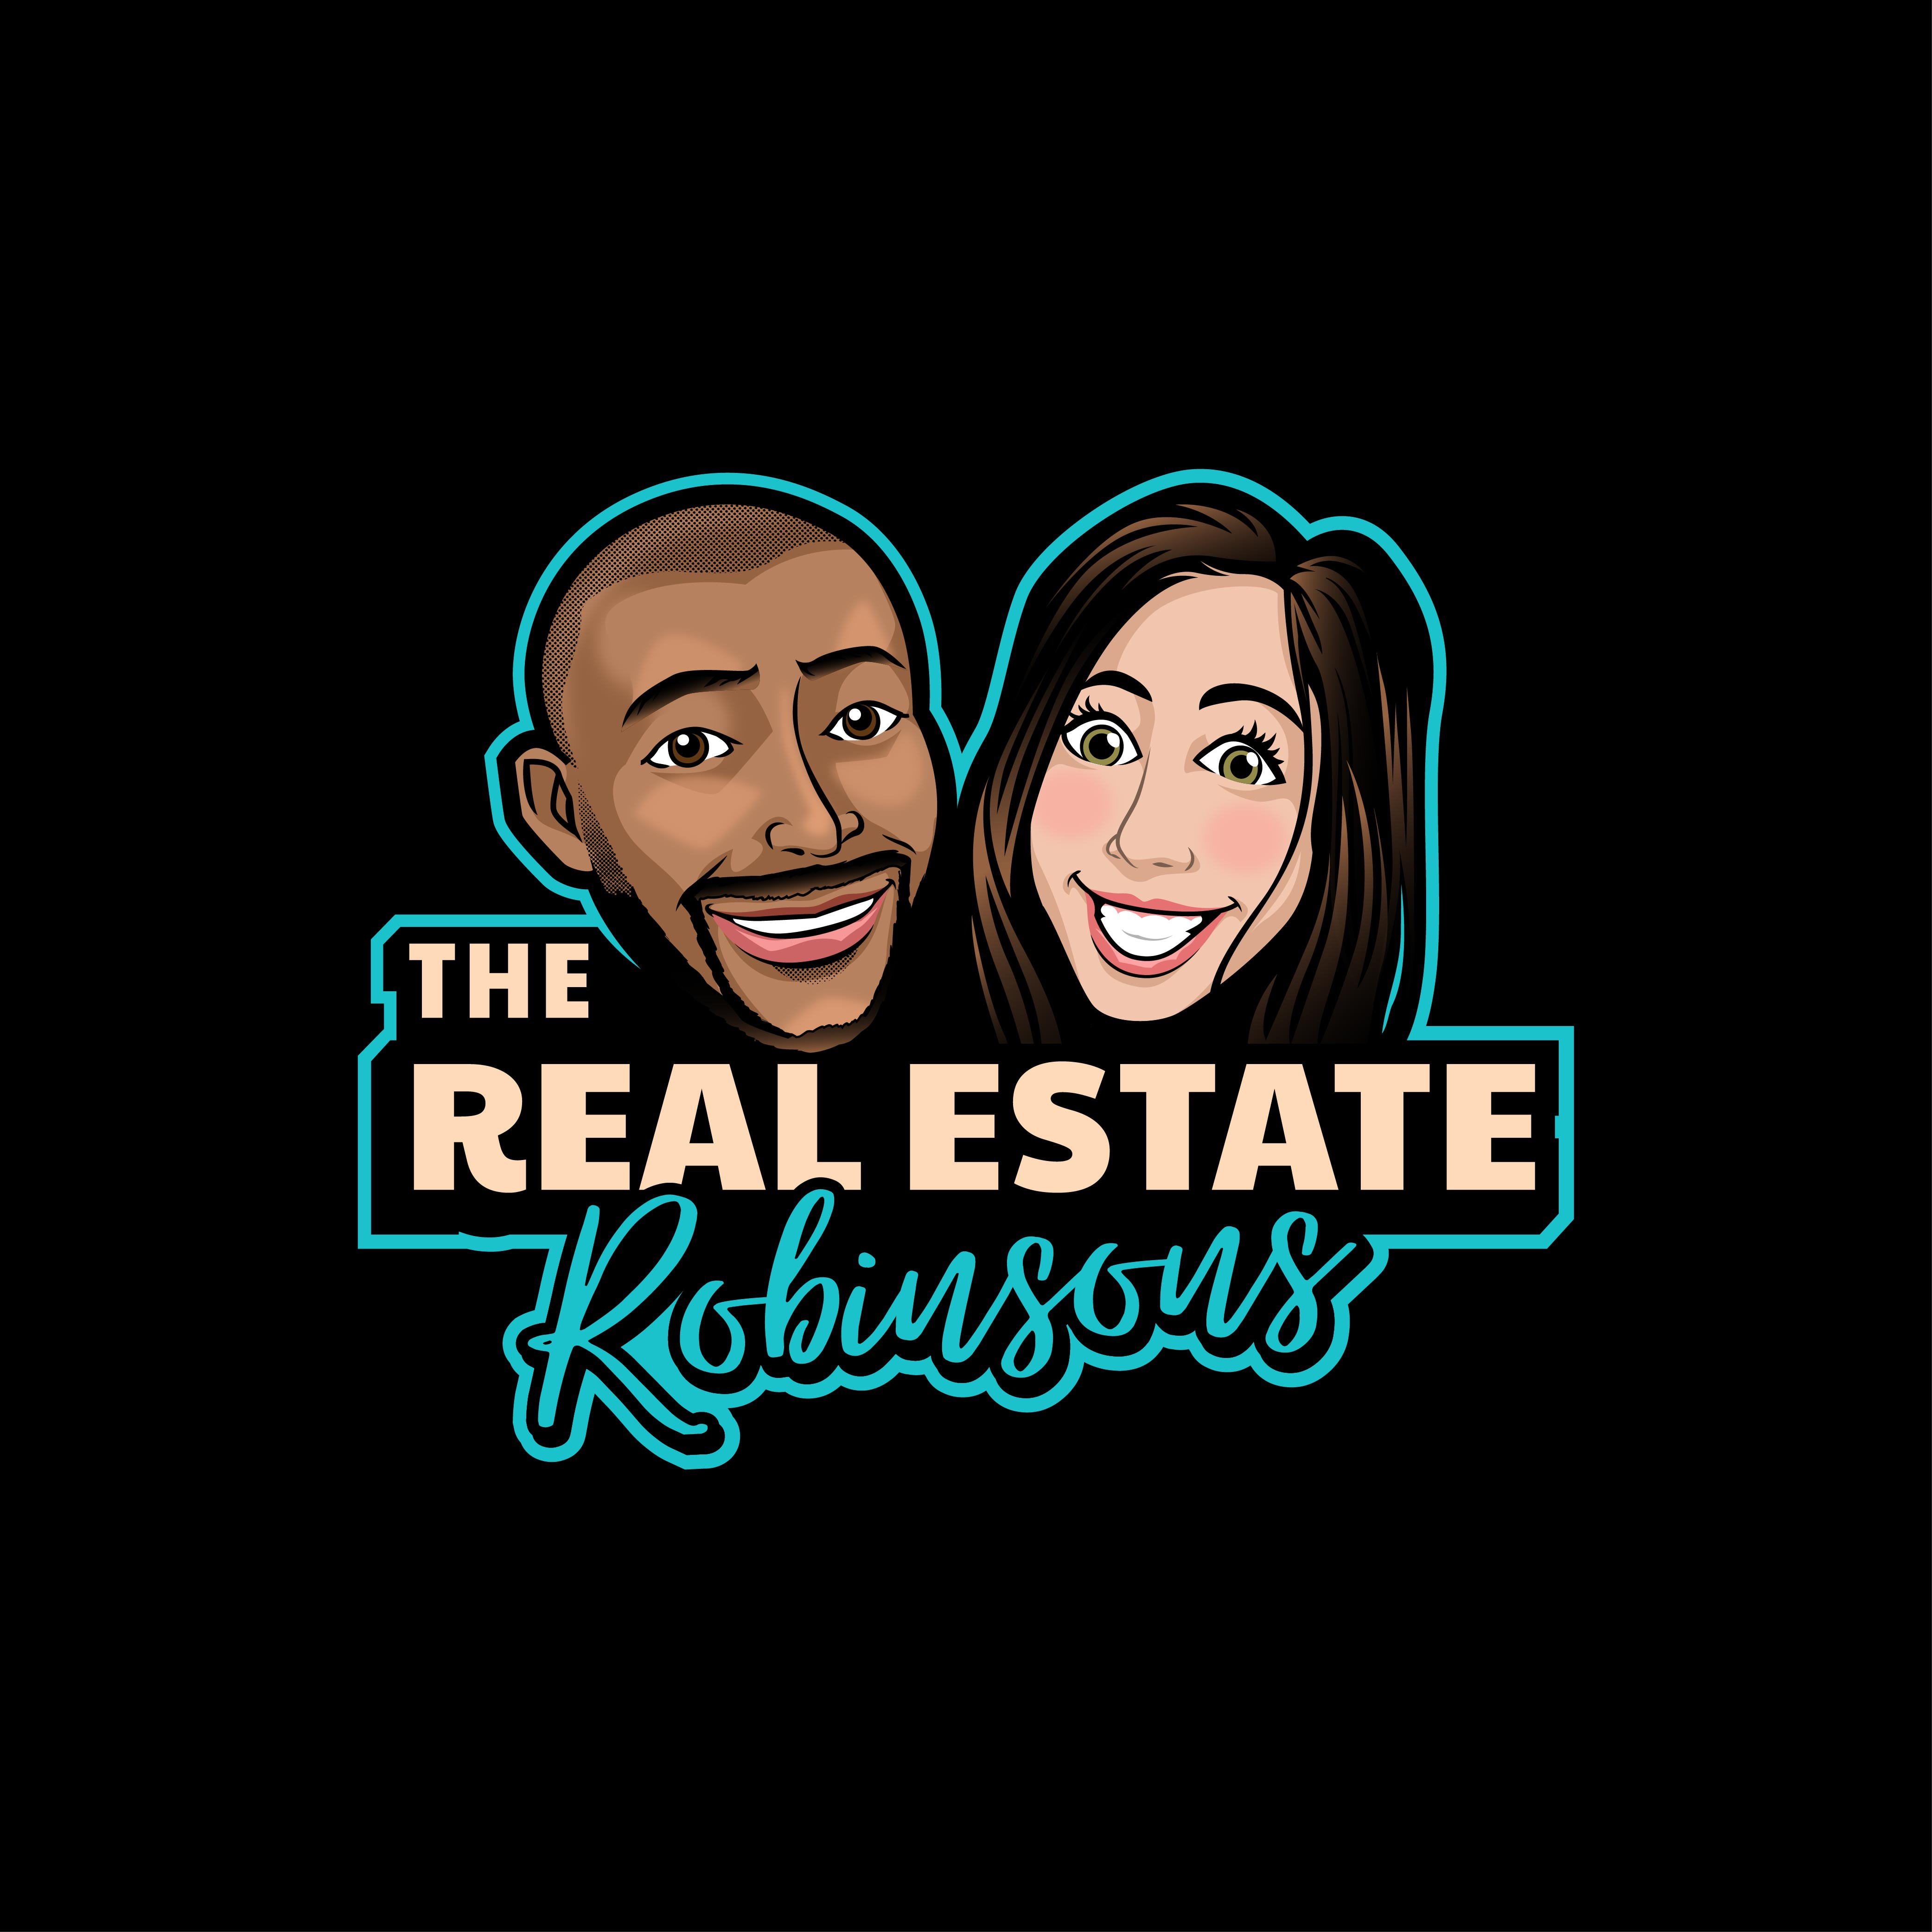 Design a Fun & Unique Logo for a Real Estate Investing YouTube Channel Targeting Millennials